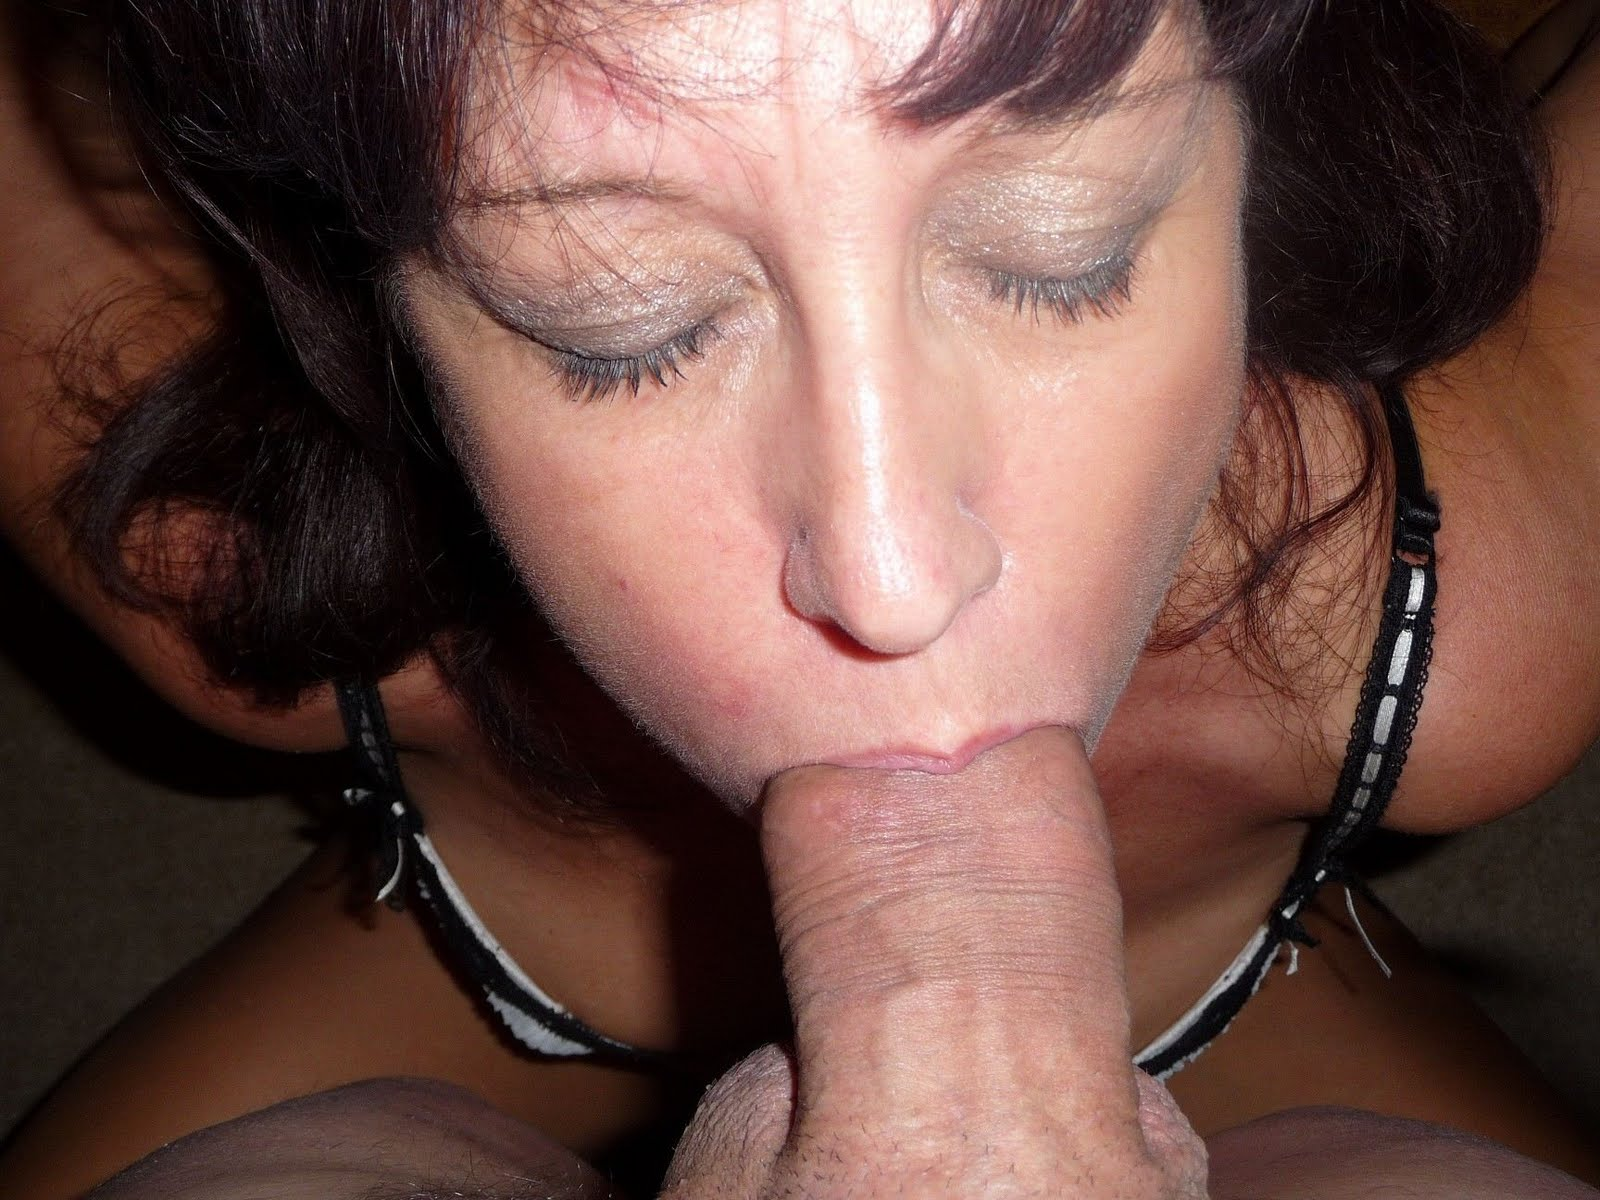 Love deepthroat mature woman